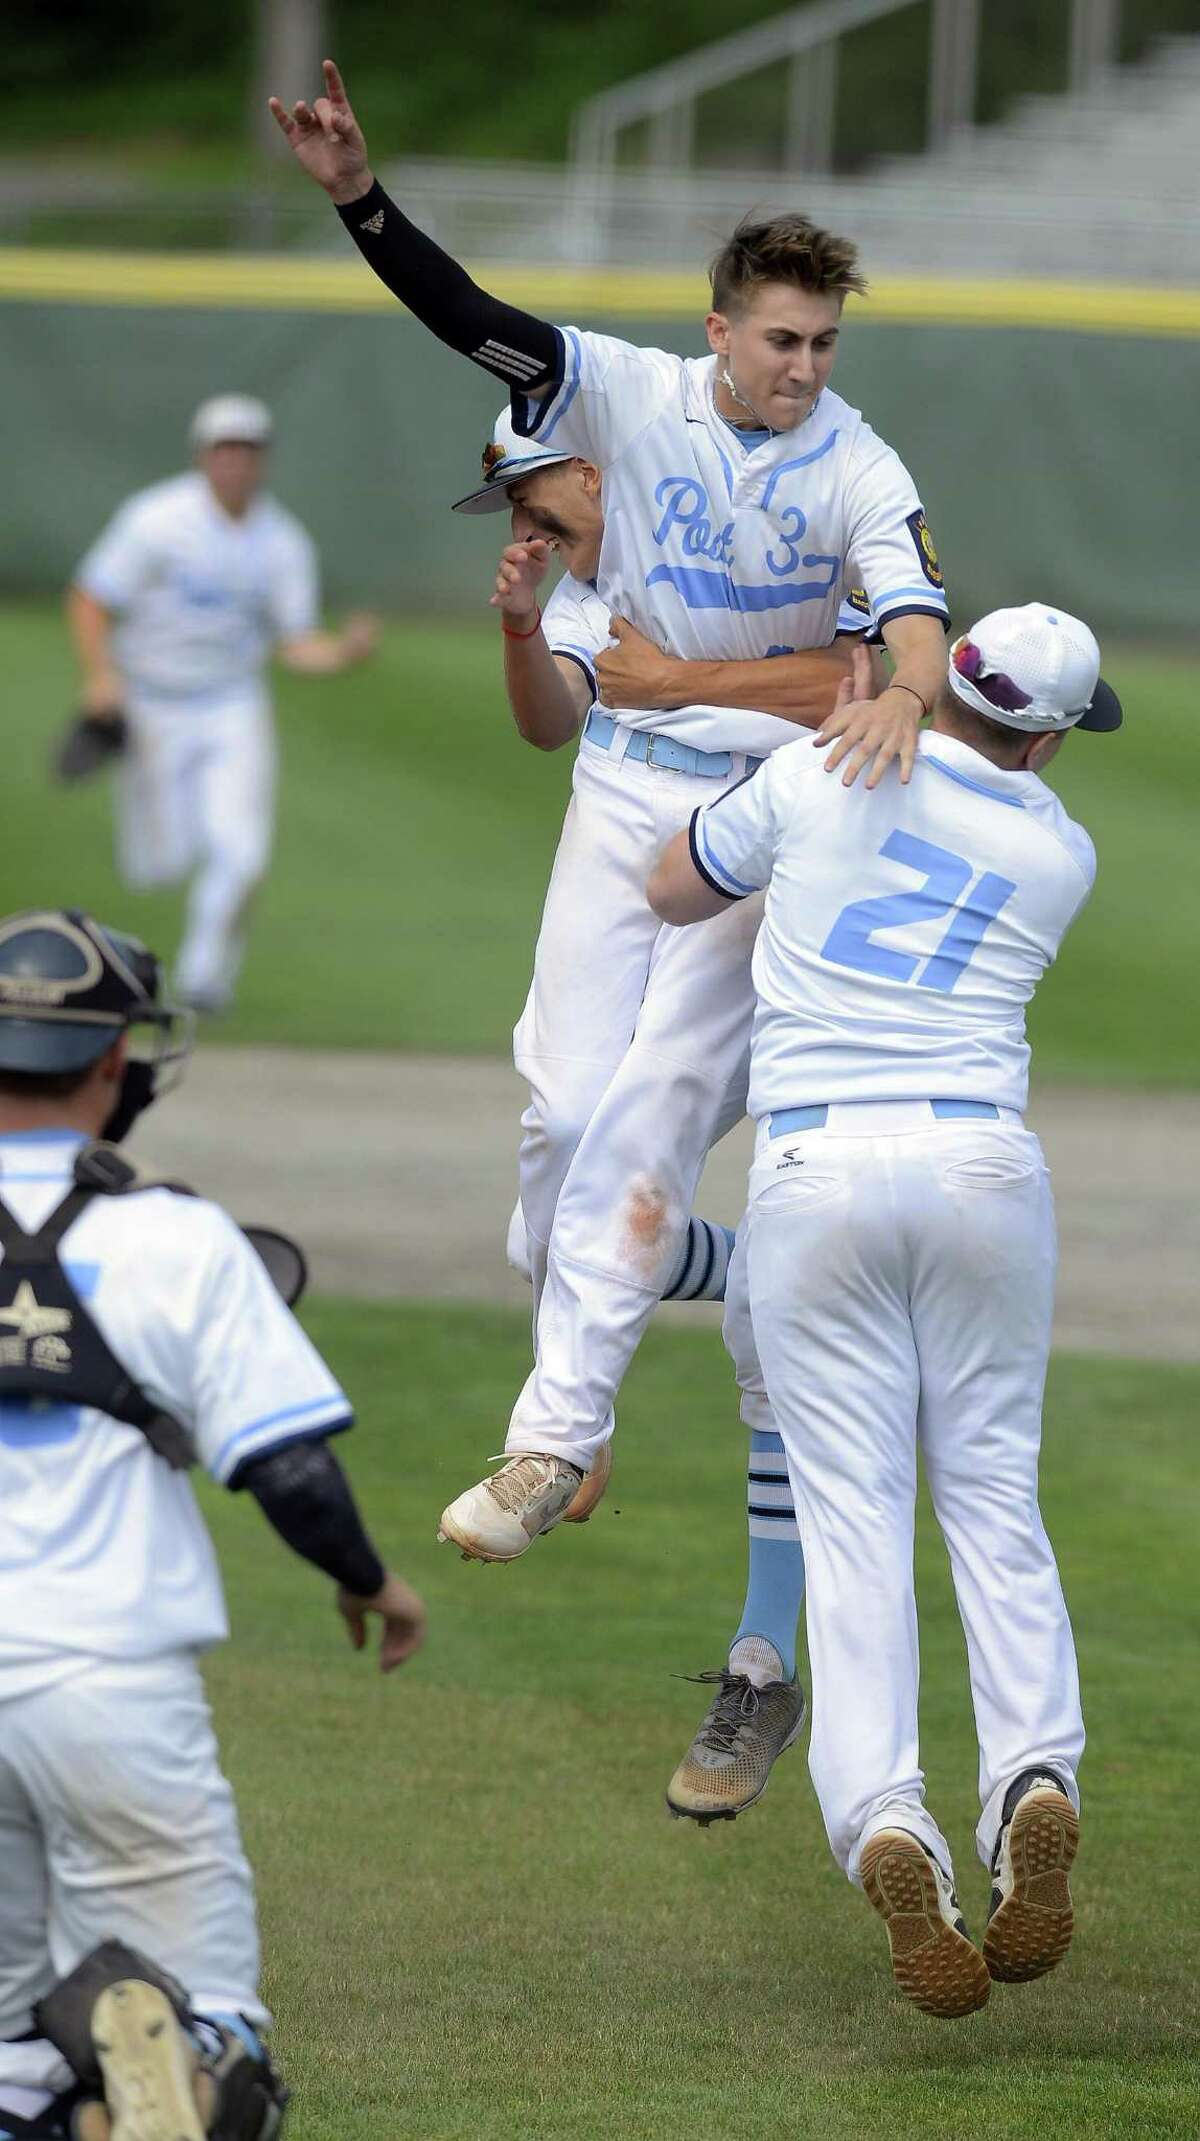 Stamford pitcher Aaron D'Annolfo celebrates with Adam Stone and Leo Socci after defeating West Hartford in the Senior American Legion championship series at Palmer Field on July 29 in Middletown.